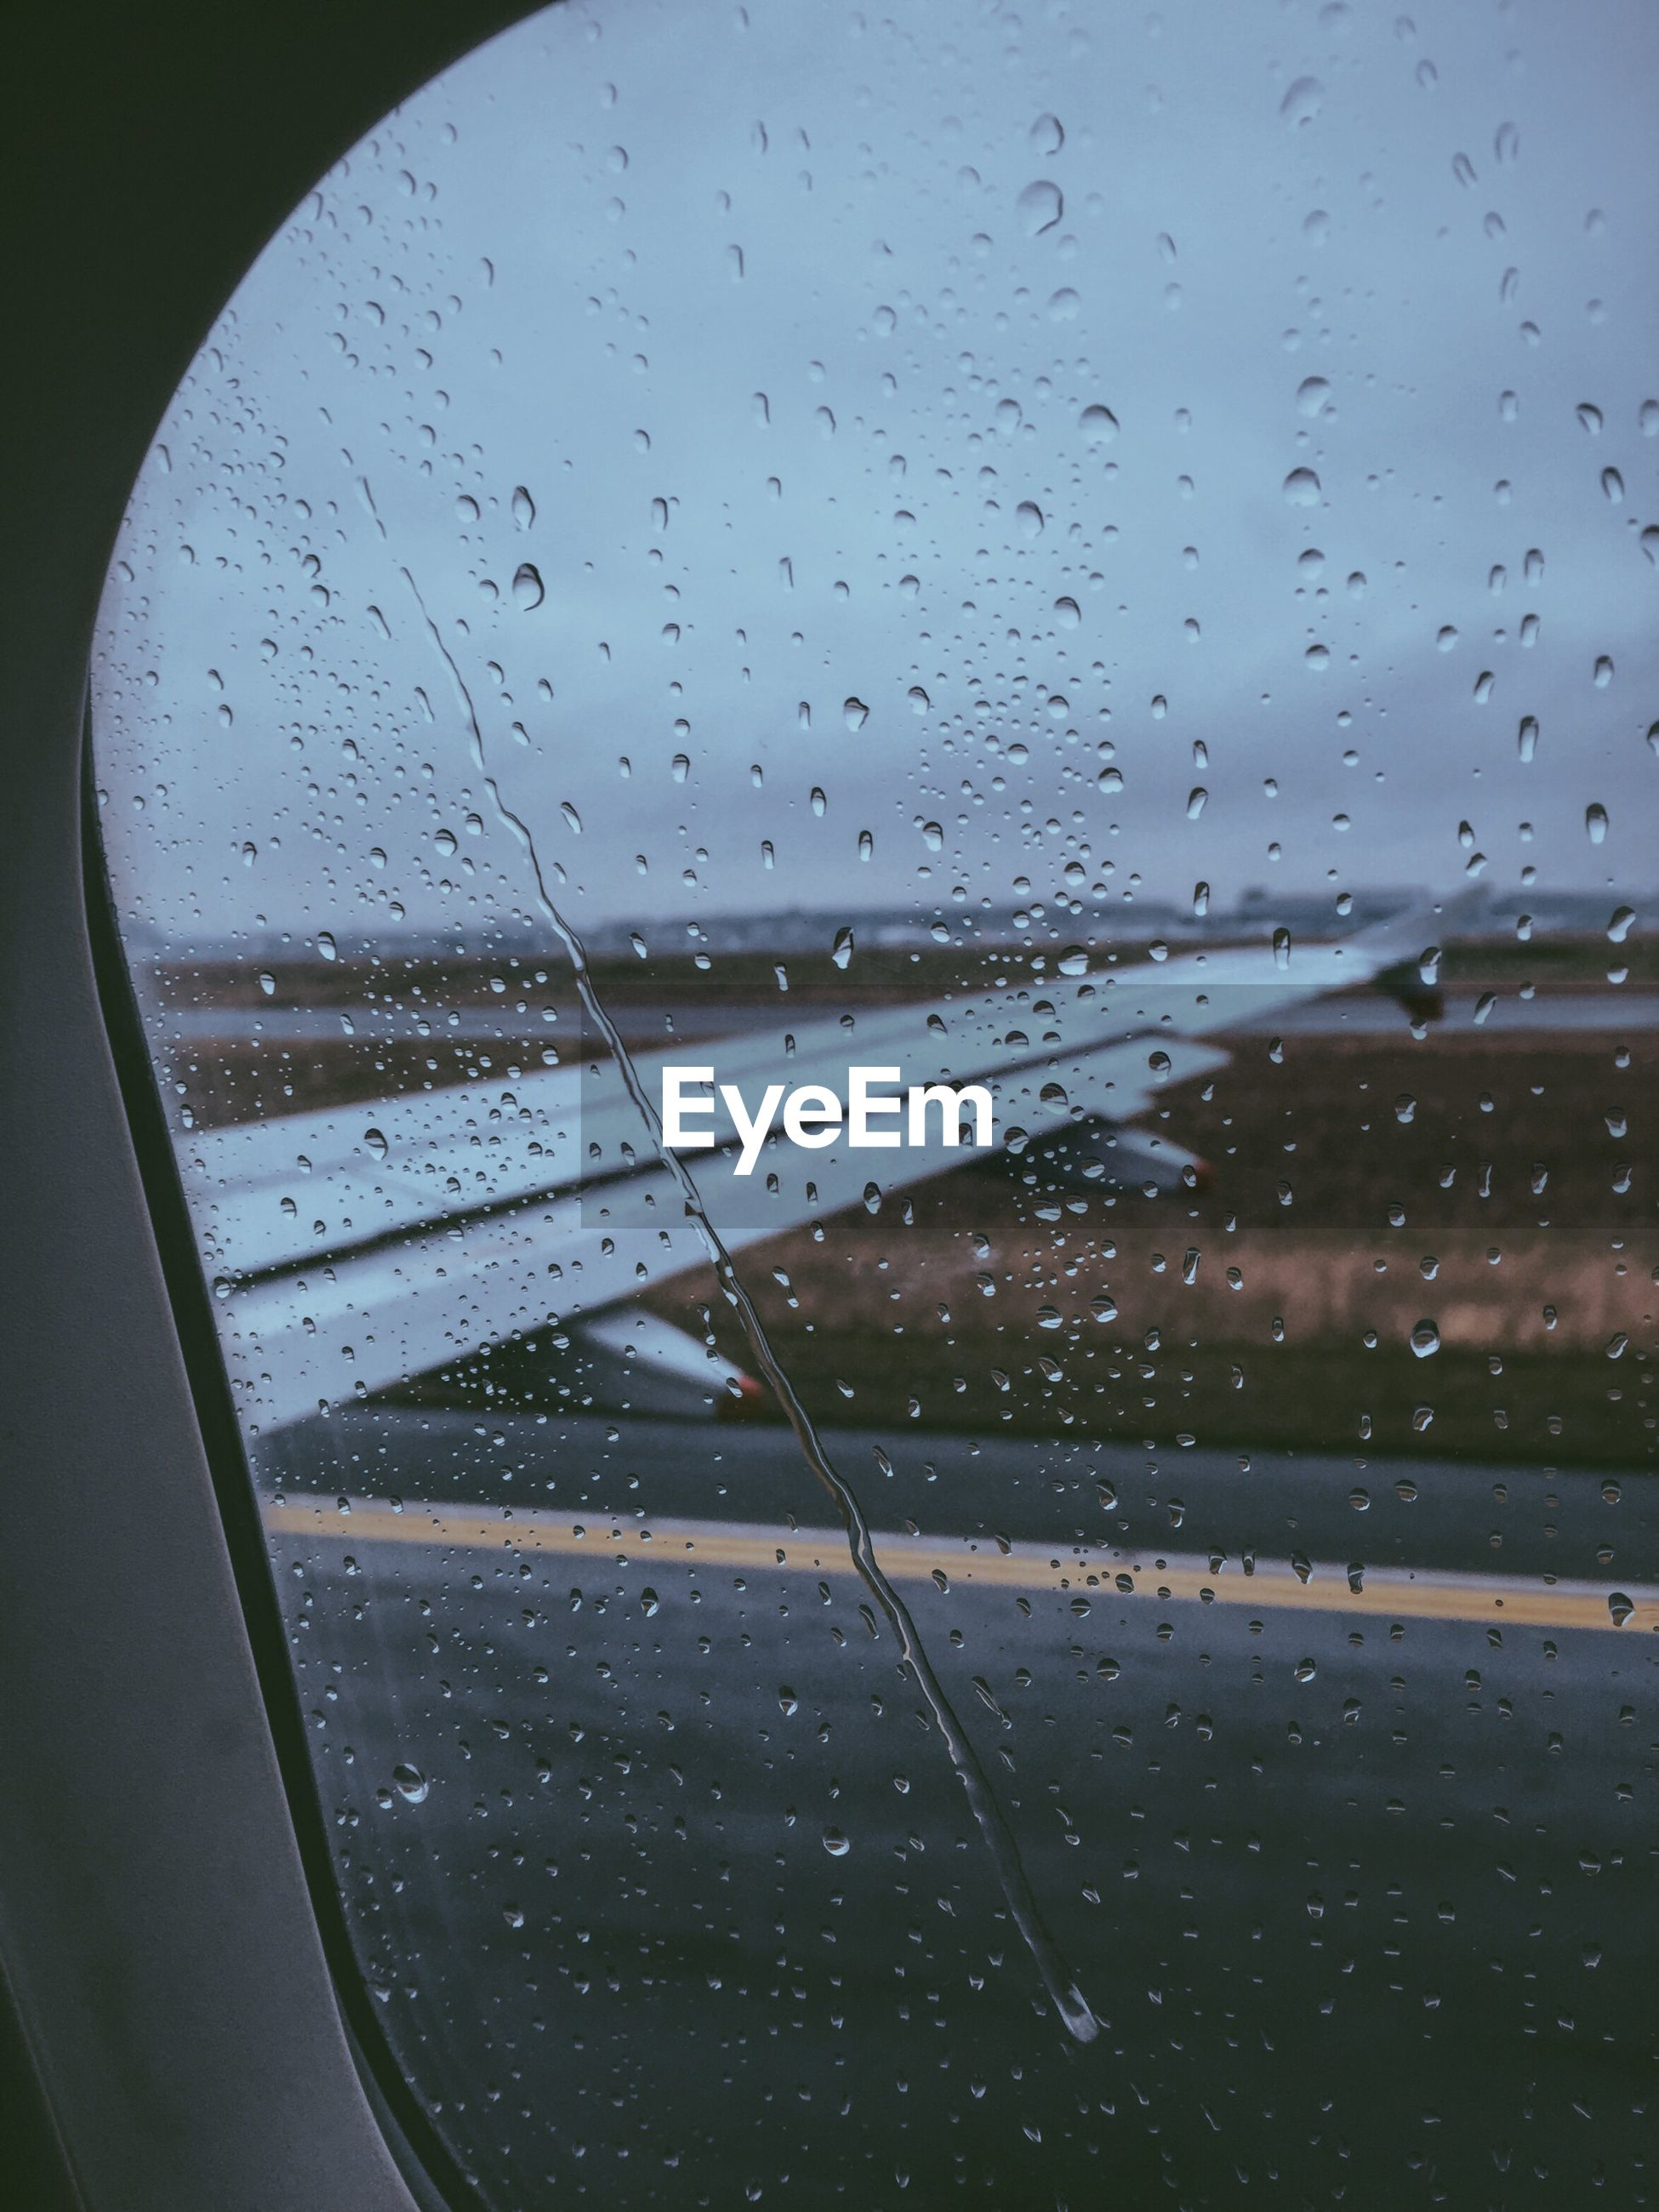 CLOSE-UP OF WATERDROPS ON GLASS WINDOW WITH VIEW OF AIRPLANE